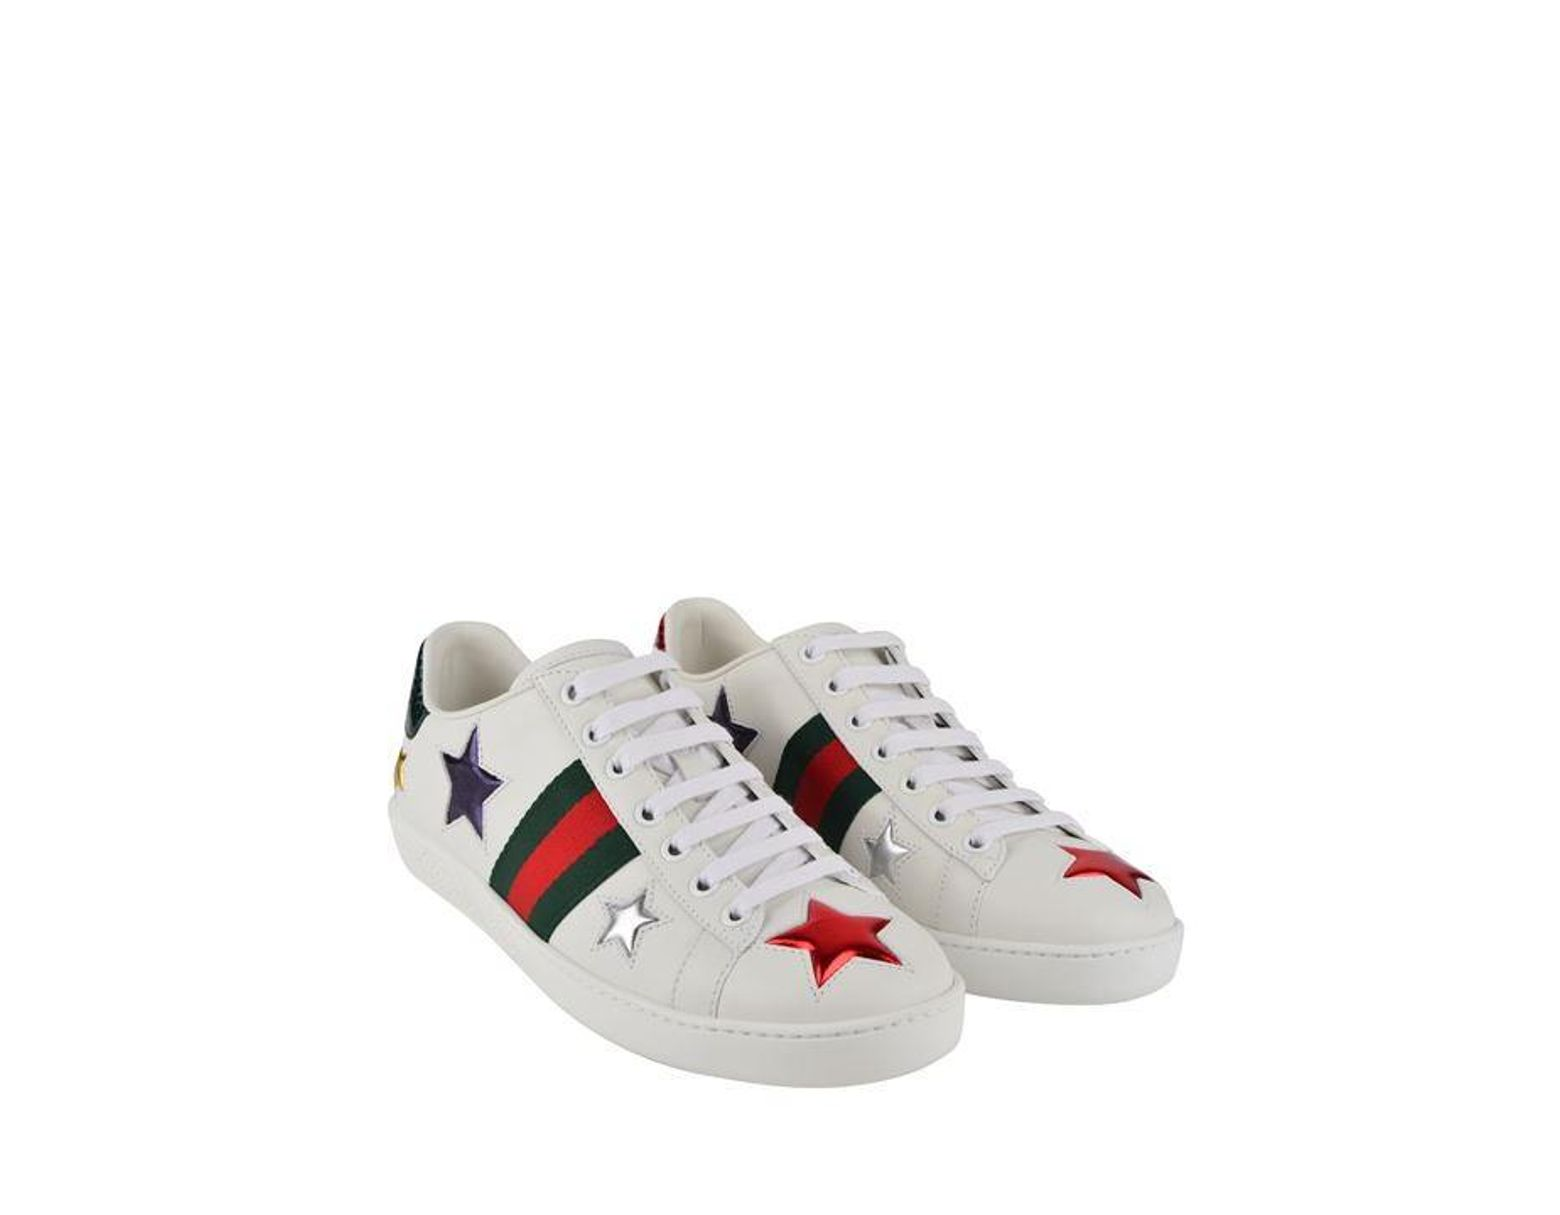 52bc3312e Gucci New Ace Star Patch Trainers in White - Save 21% - Lyst